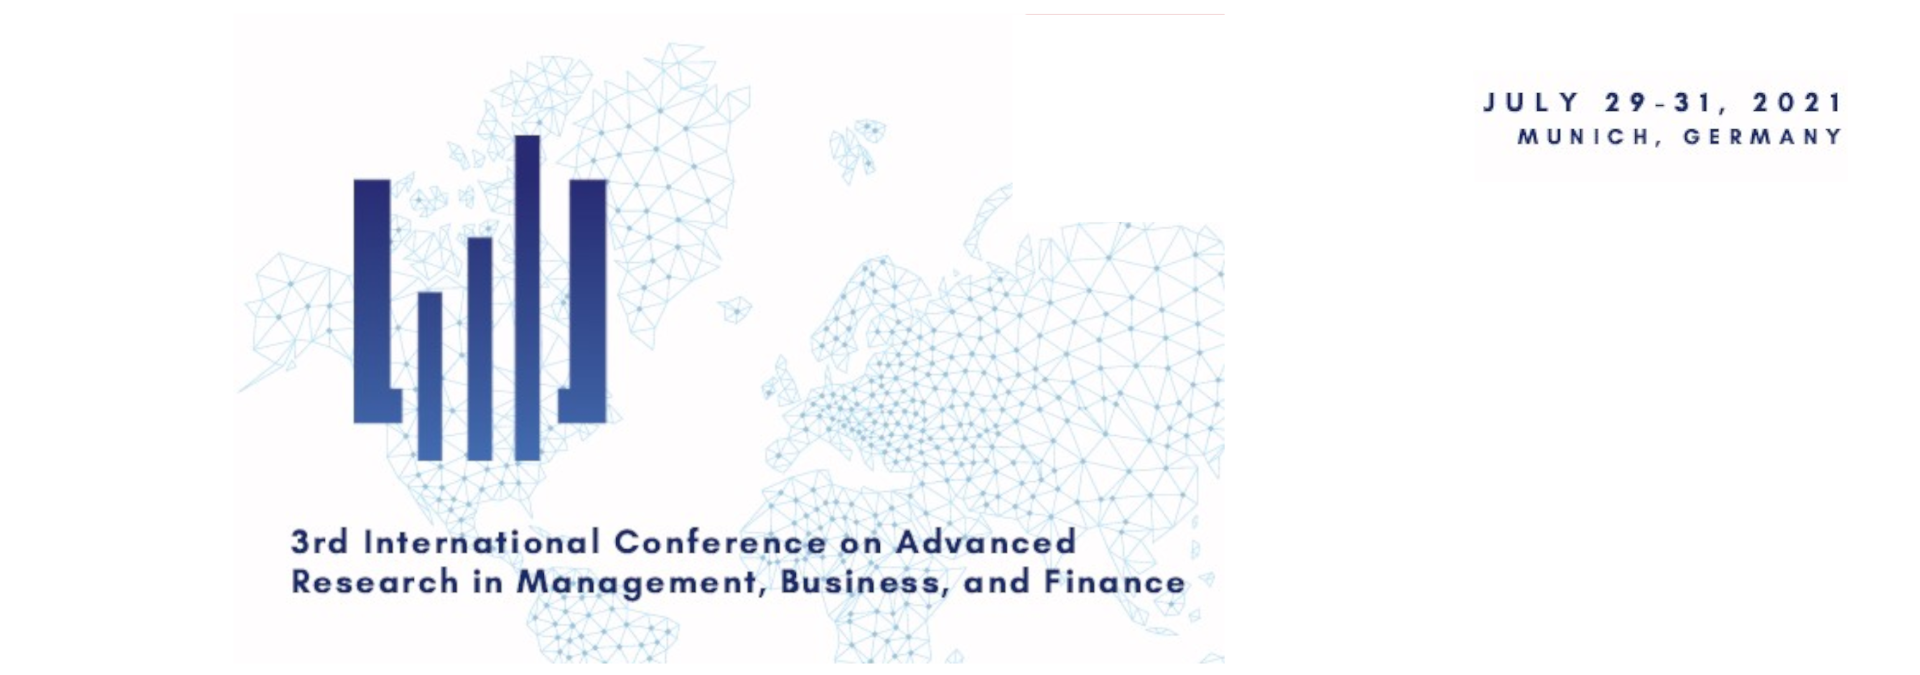 Konferenzteilnahme: The 3rd International Conference on Advanced Research in Management, Business and Finance